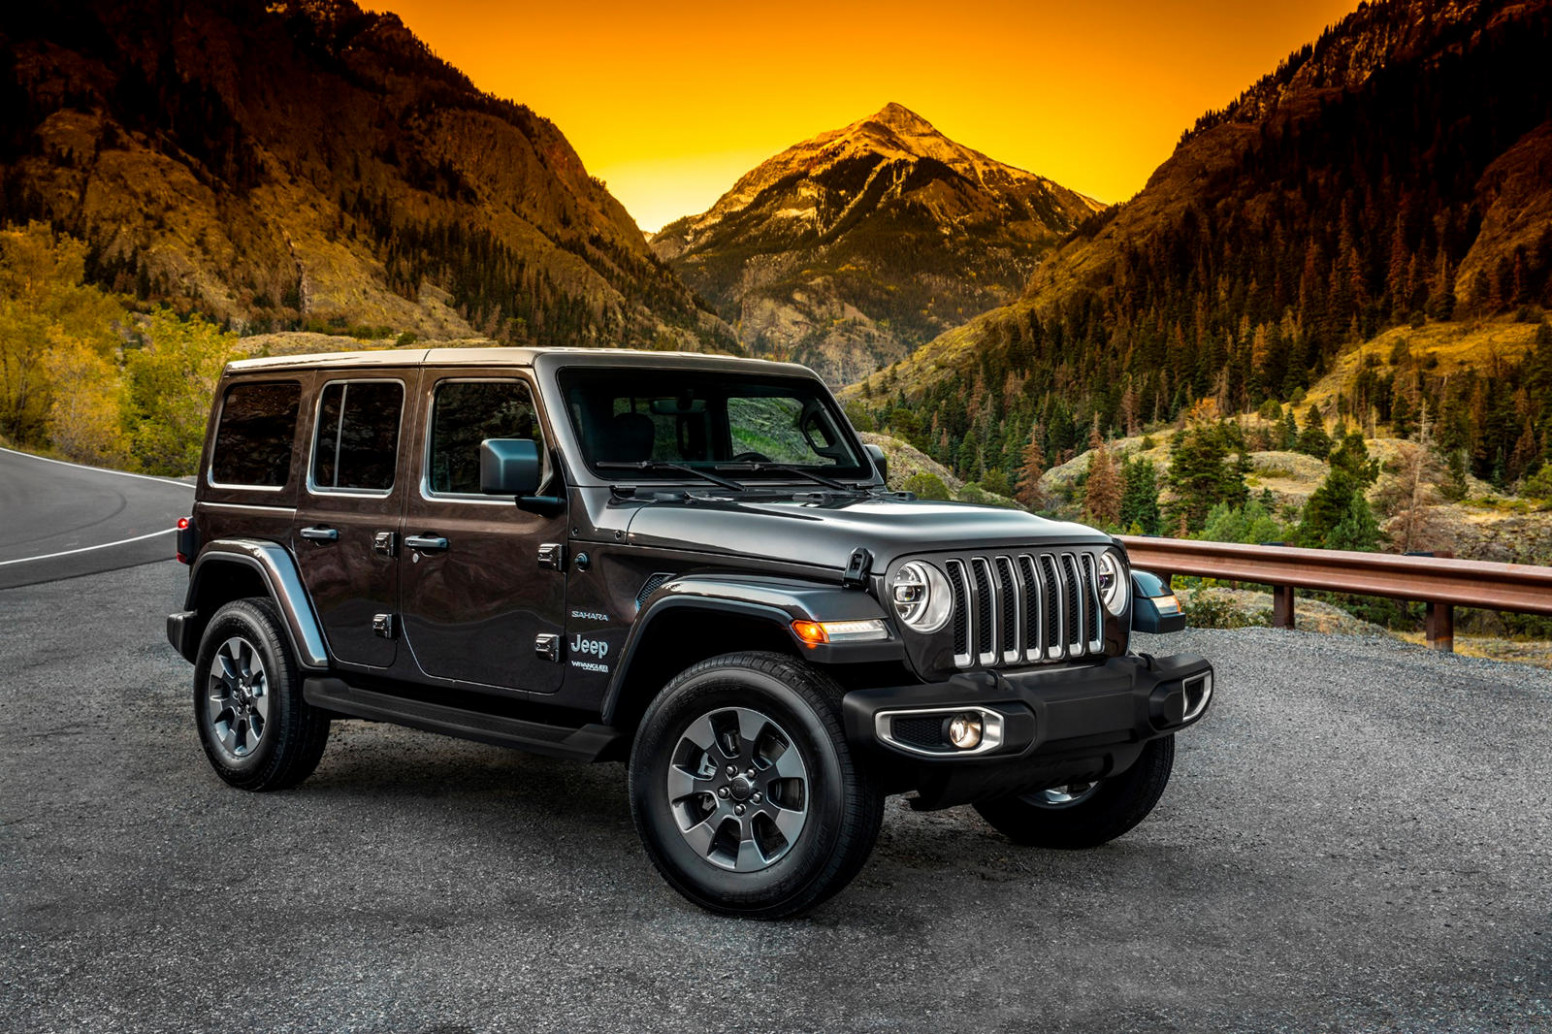 Wallpaper 2022 Jeep Wrangler